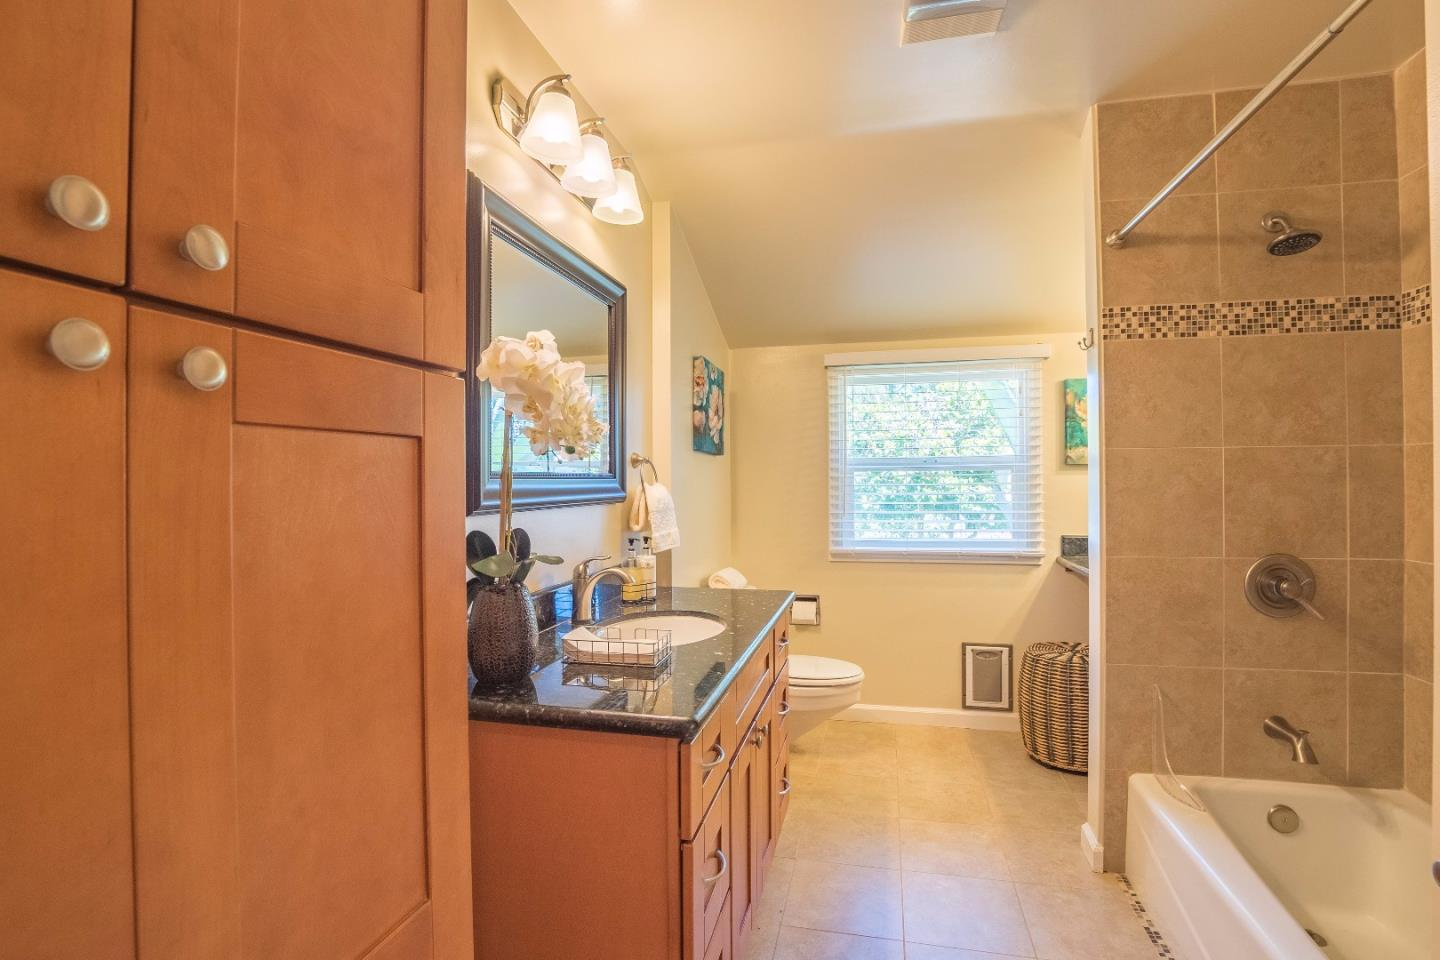 Additional photo for property listing at 15 Eastridge Drive  Santa Cruz, カリフォルニア 95060 アメリカ合衆国